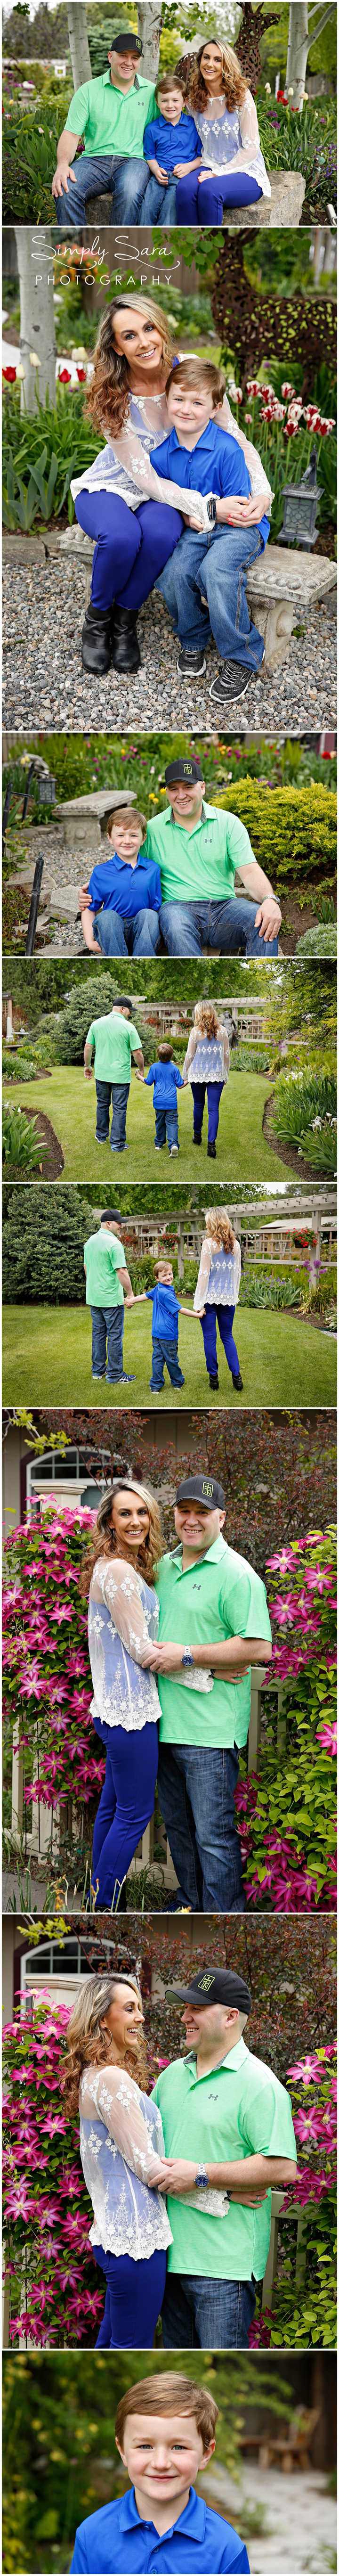 Outdoor Family Photo Ideas & Poses - Parents with Young Kids - What to Wear for Photos - Garden Setting - Billings, MT Family & Child Photographer